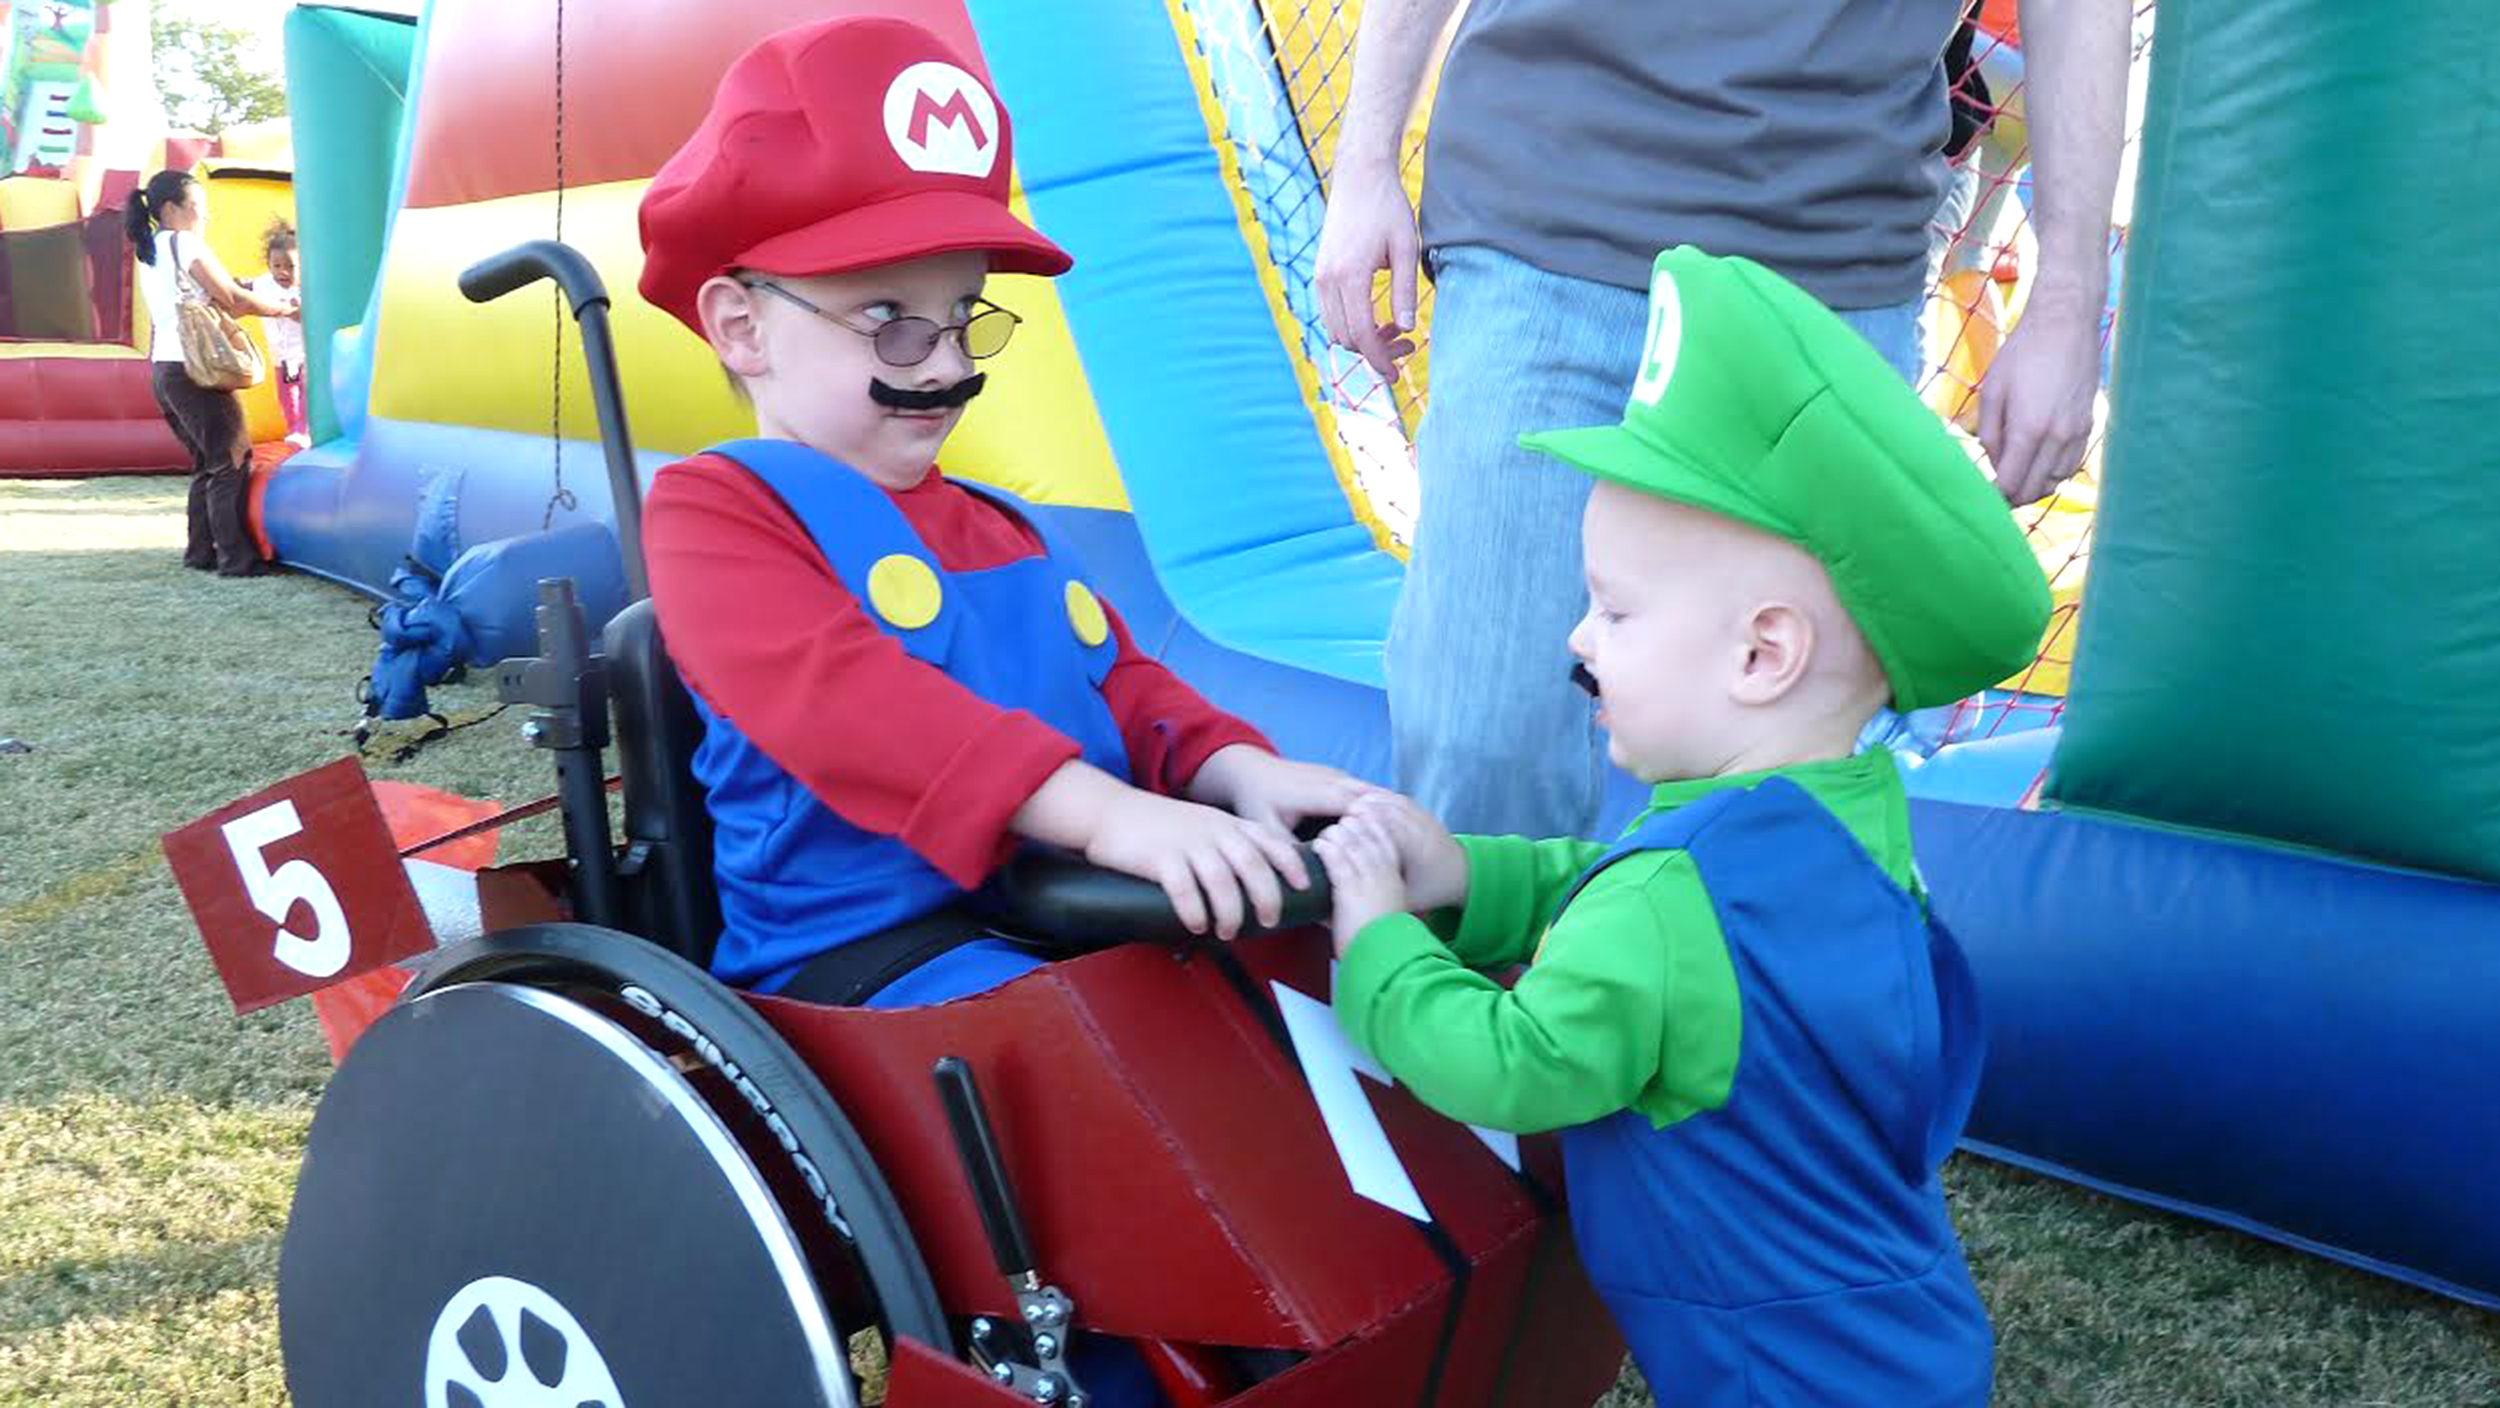 halloween on wheels wheelchair costumes bring joy to kids today com